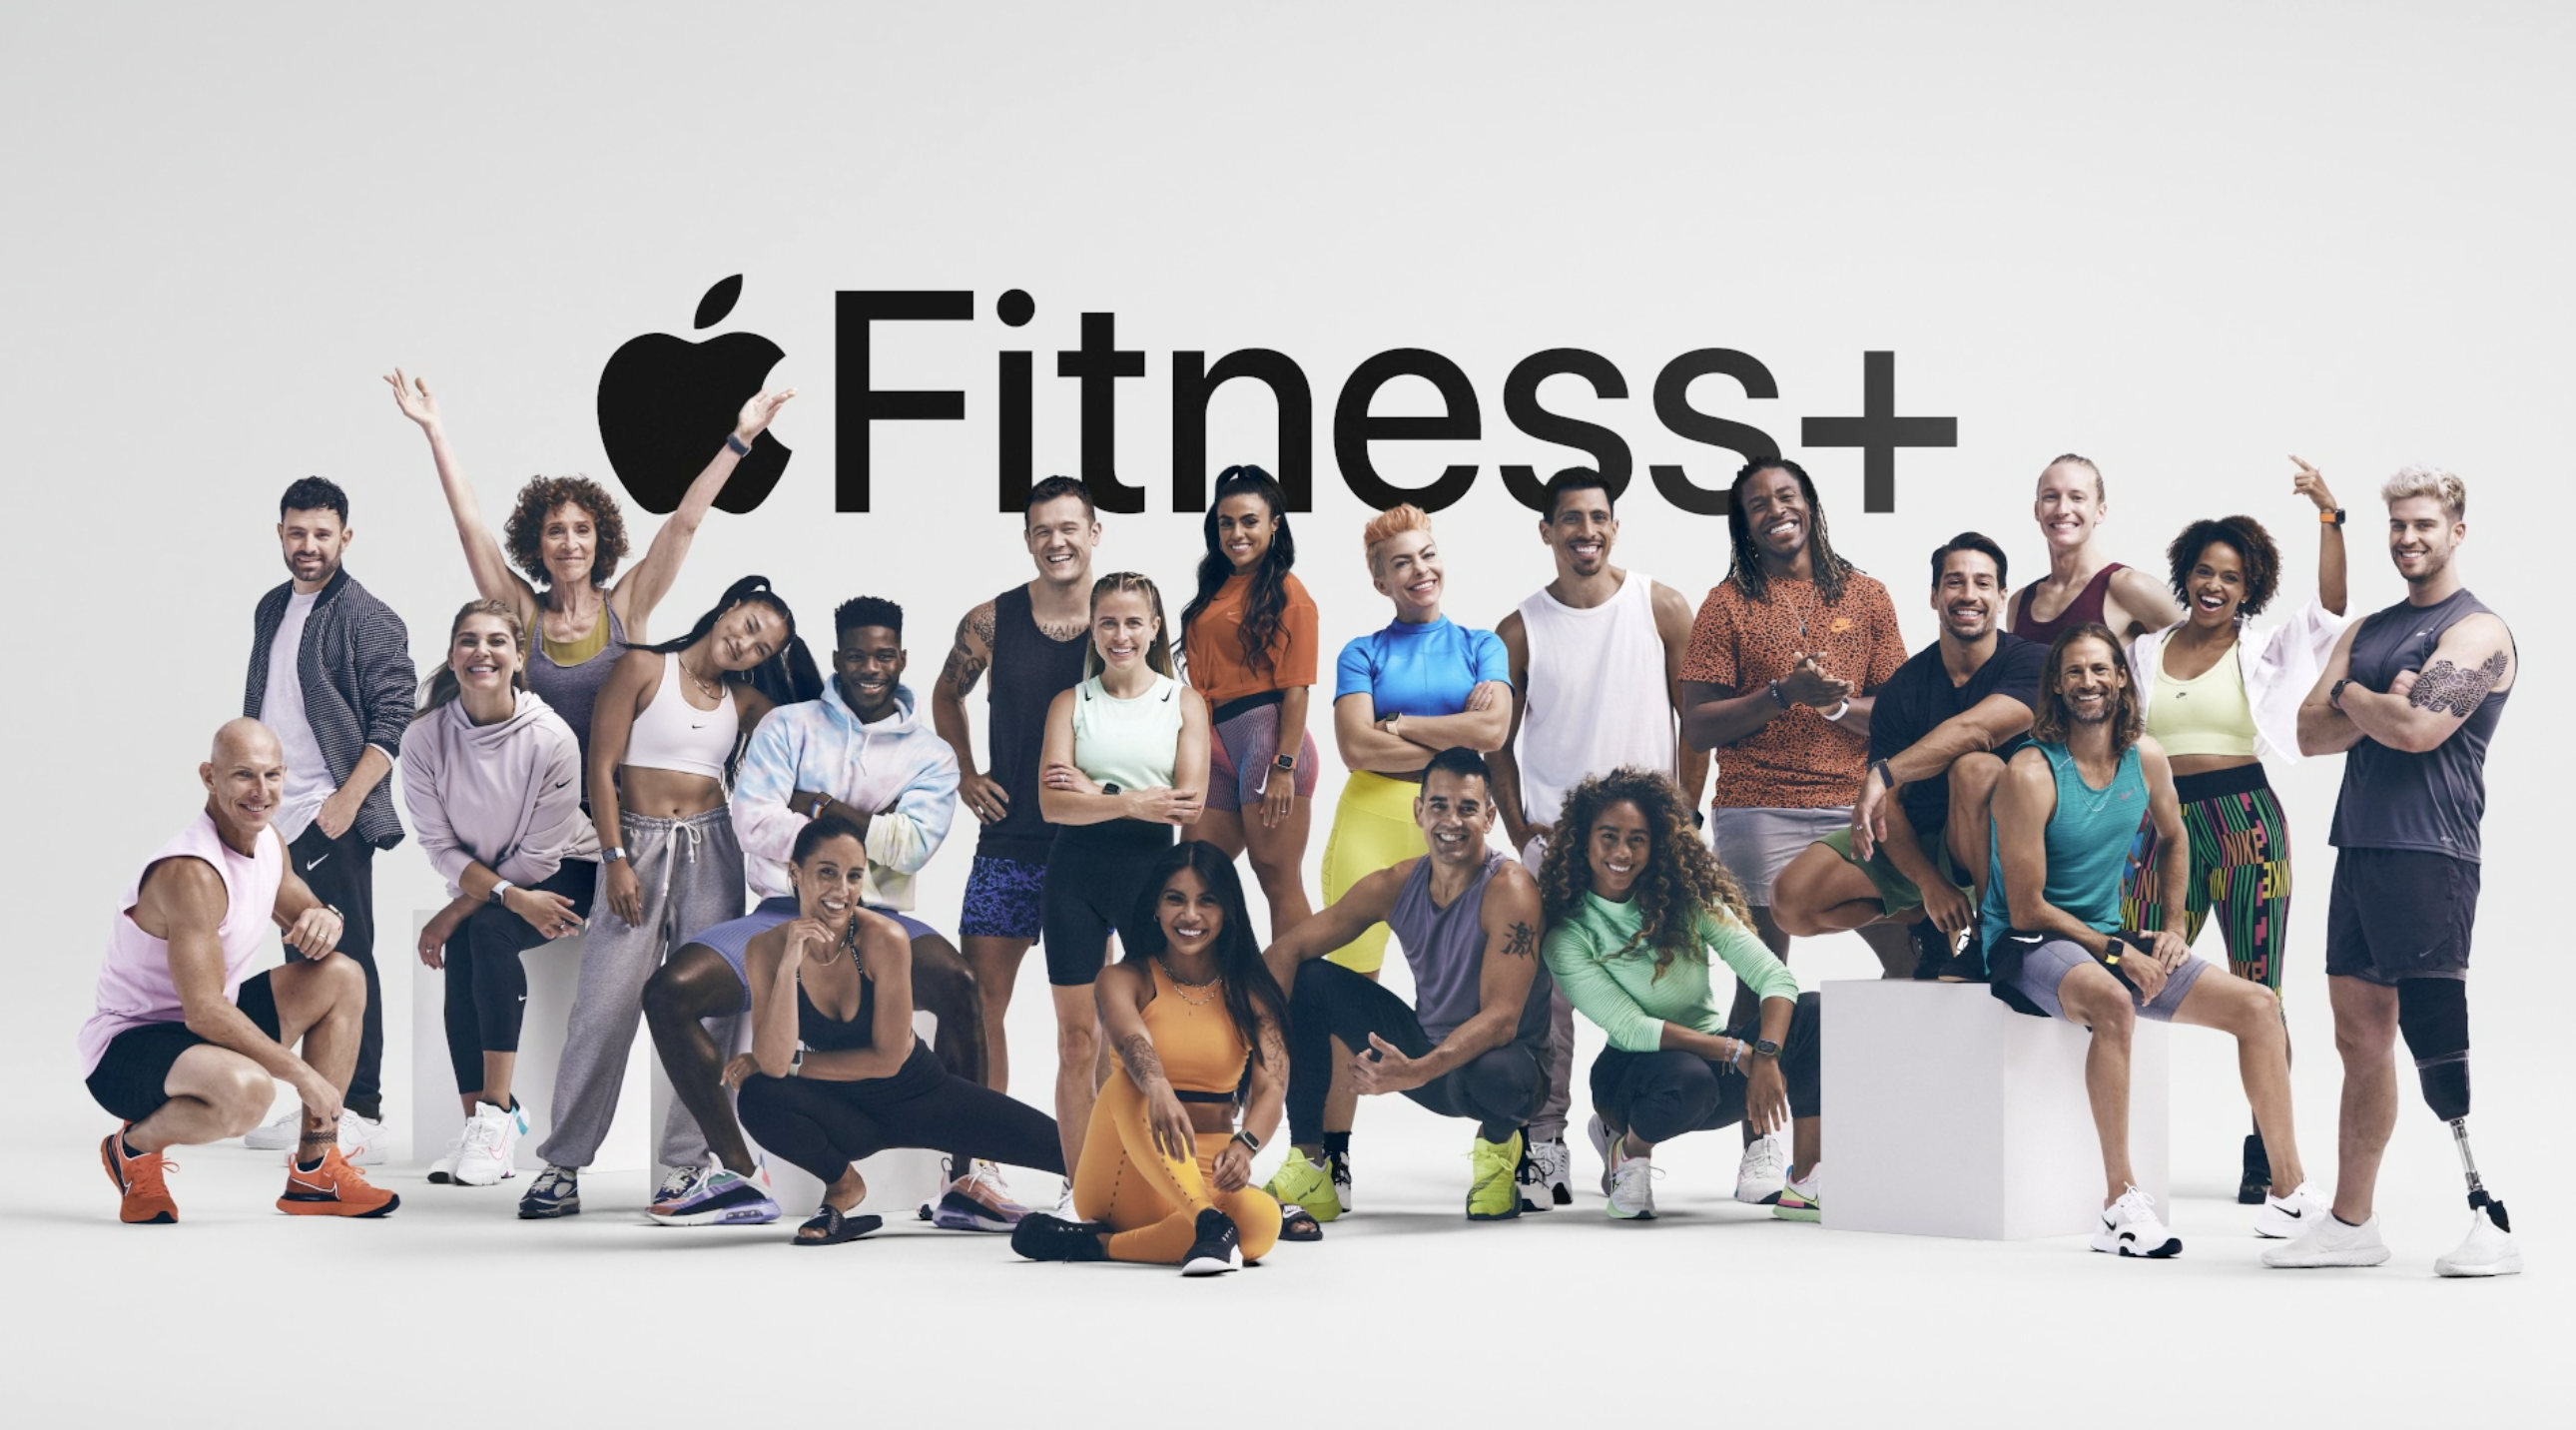 photo of Best Buy and CVS offering free Fitness+ access to Apple Watch owners, more image